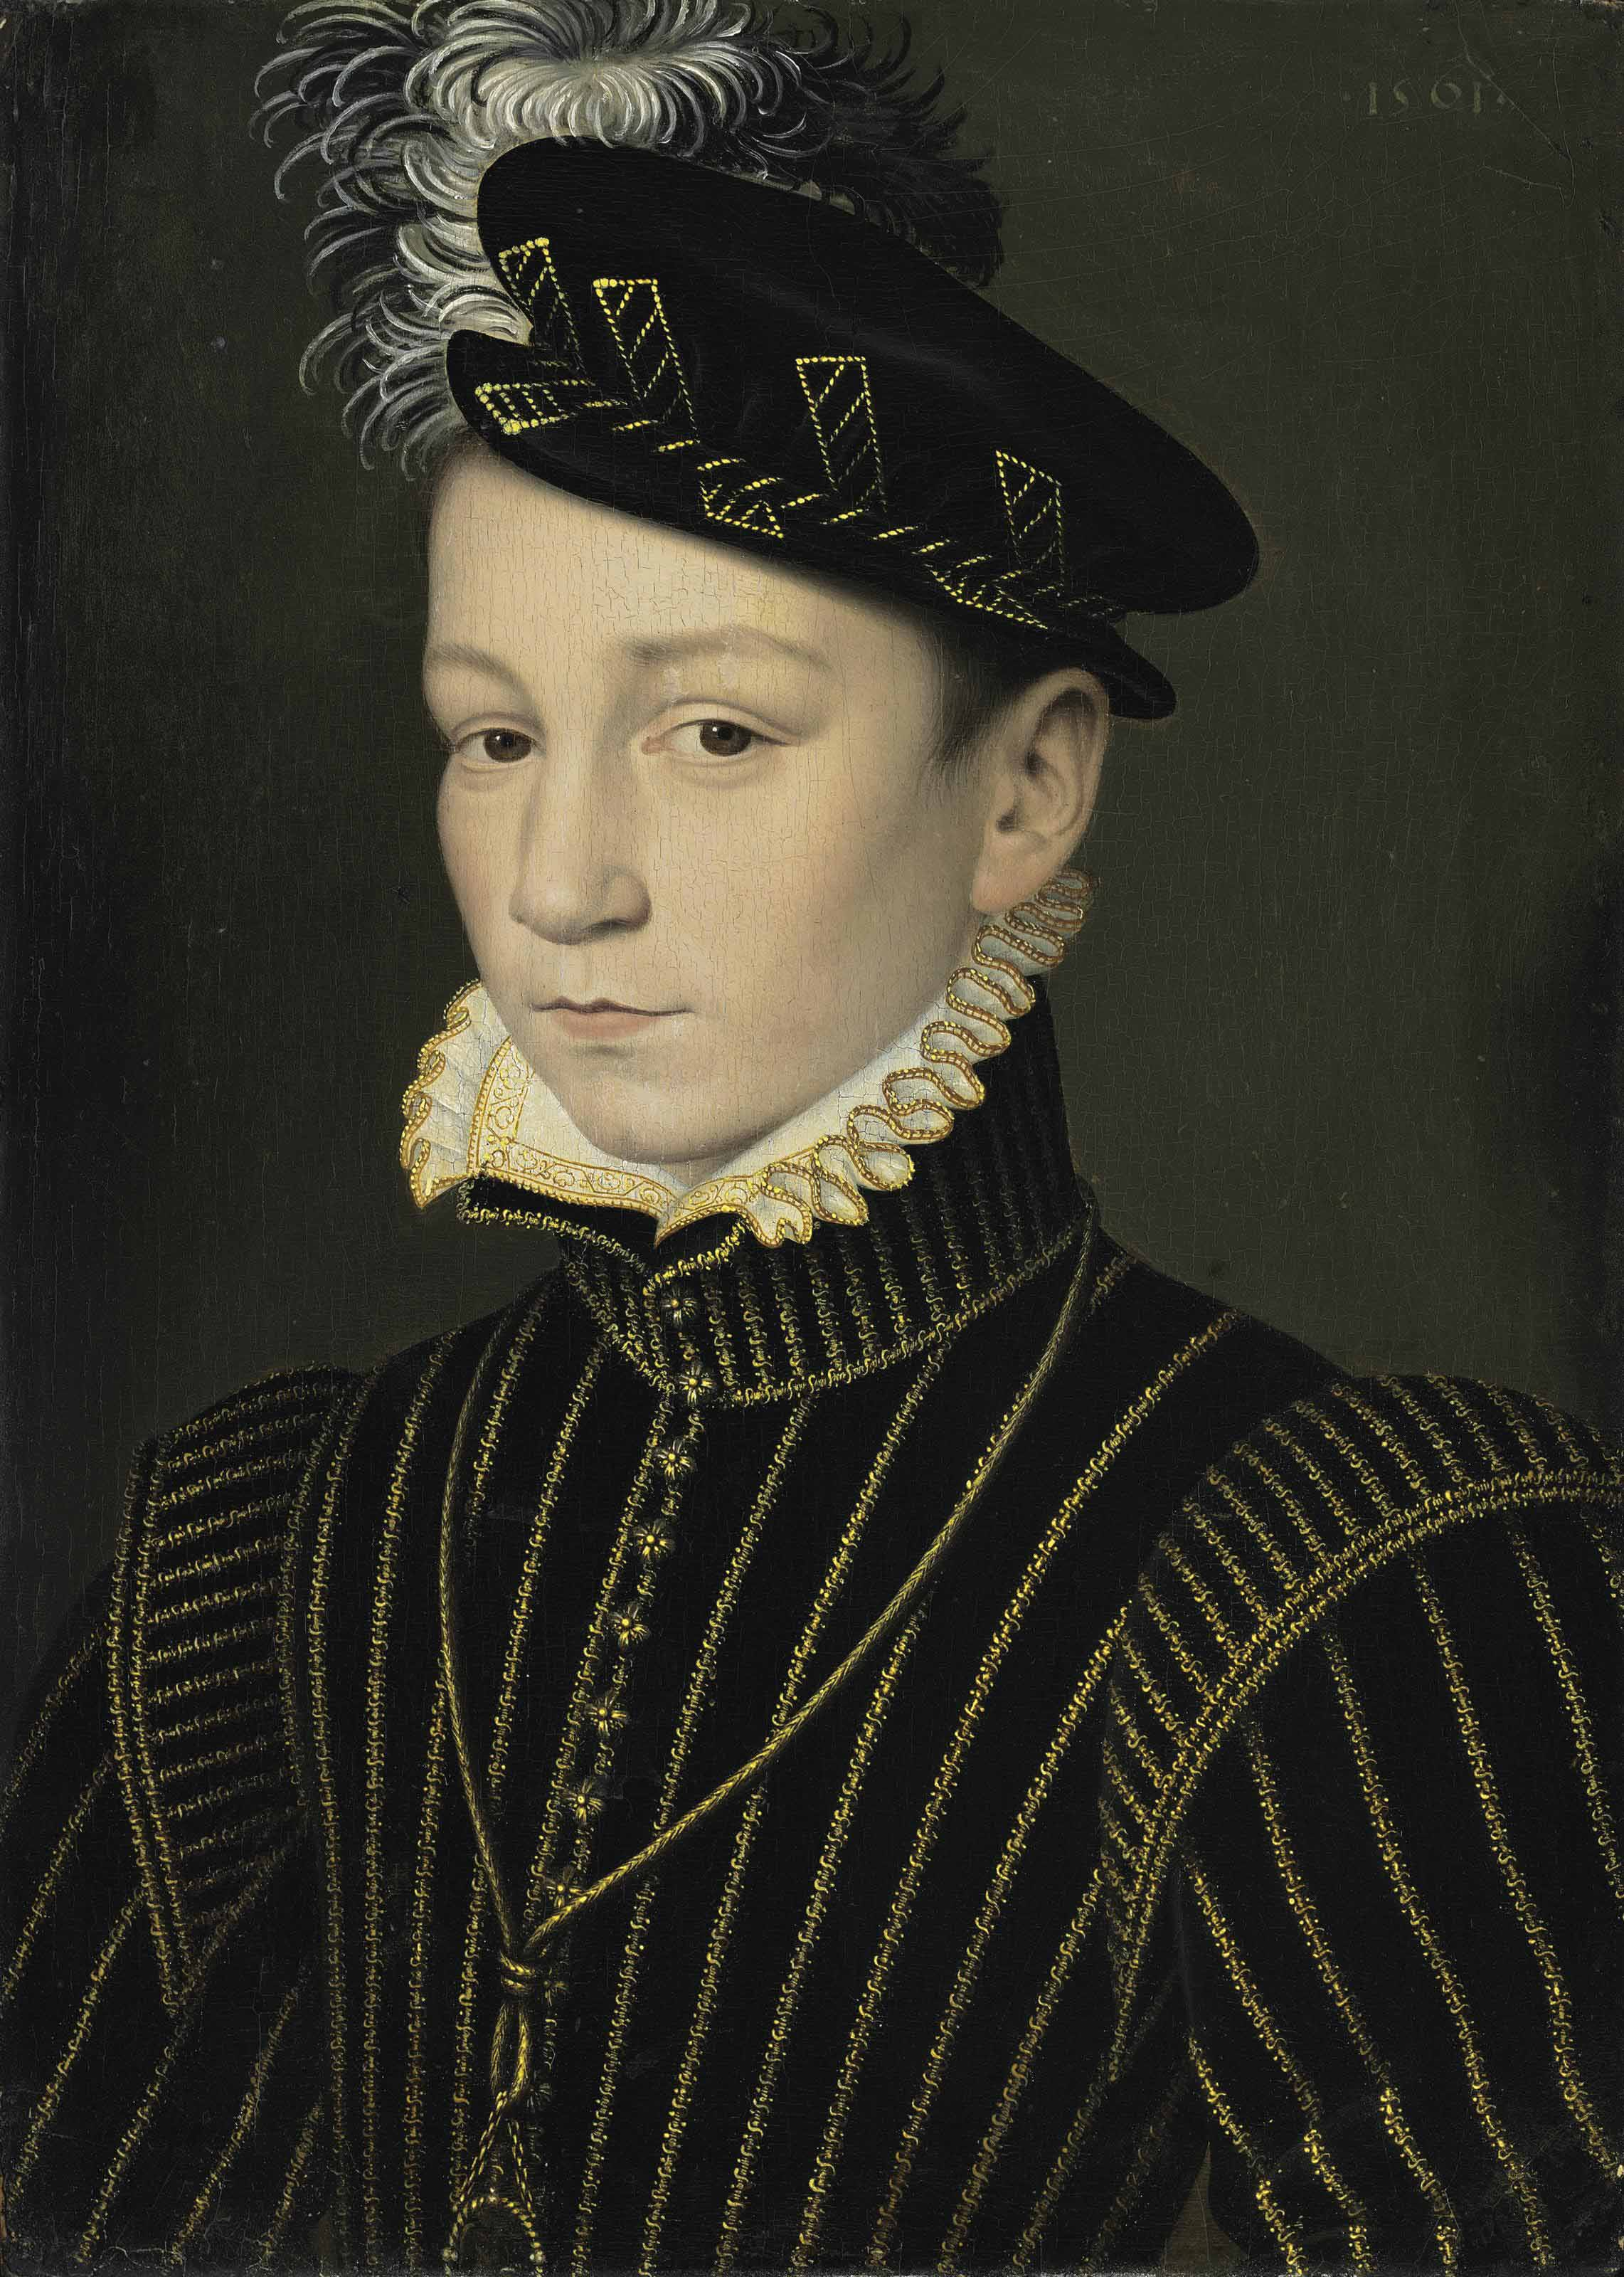 Portrait of King Charles IX of France (1550-1574)